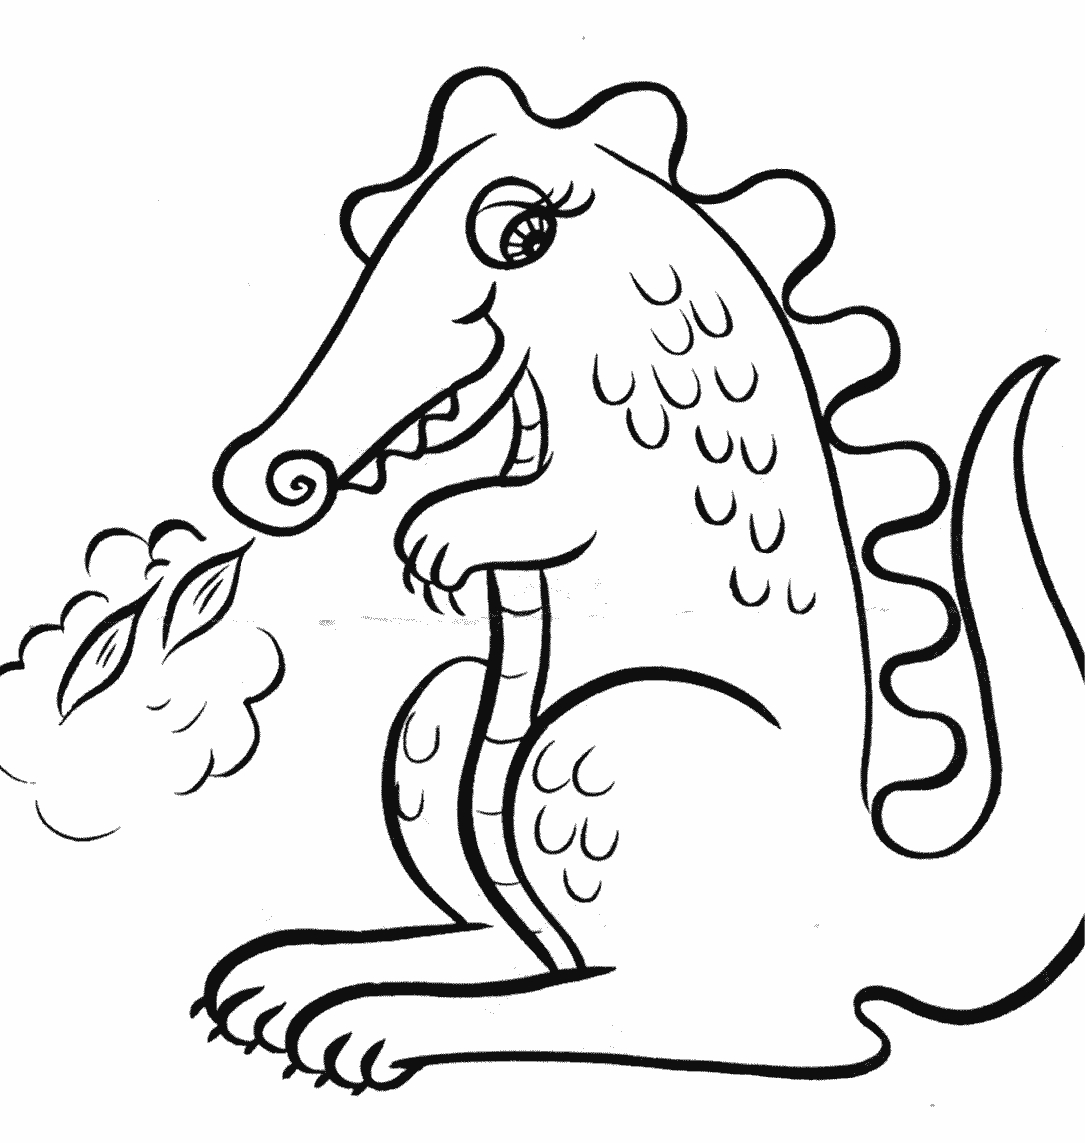 dr suess coloring pages - dragon coloring pages